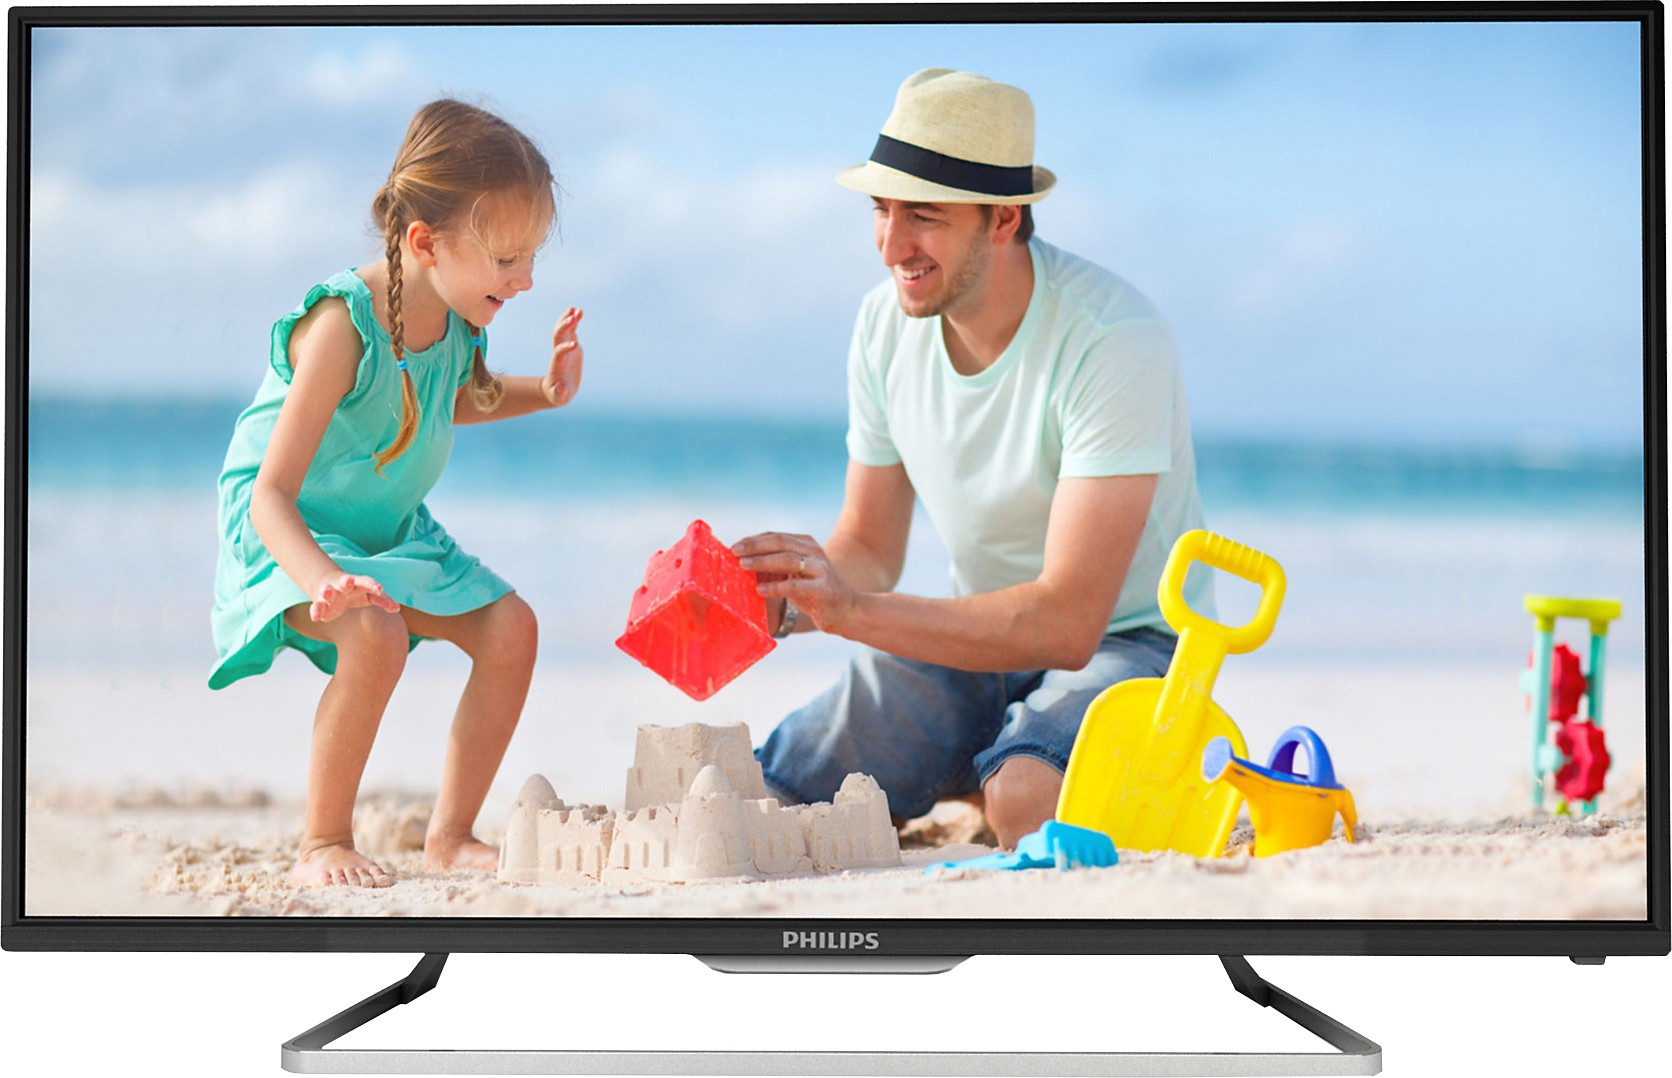 PHILIPS 50PFL5059 V7 50 Inches Full HD LED TV